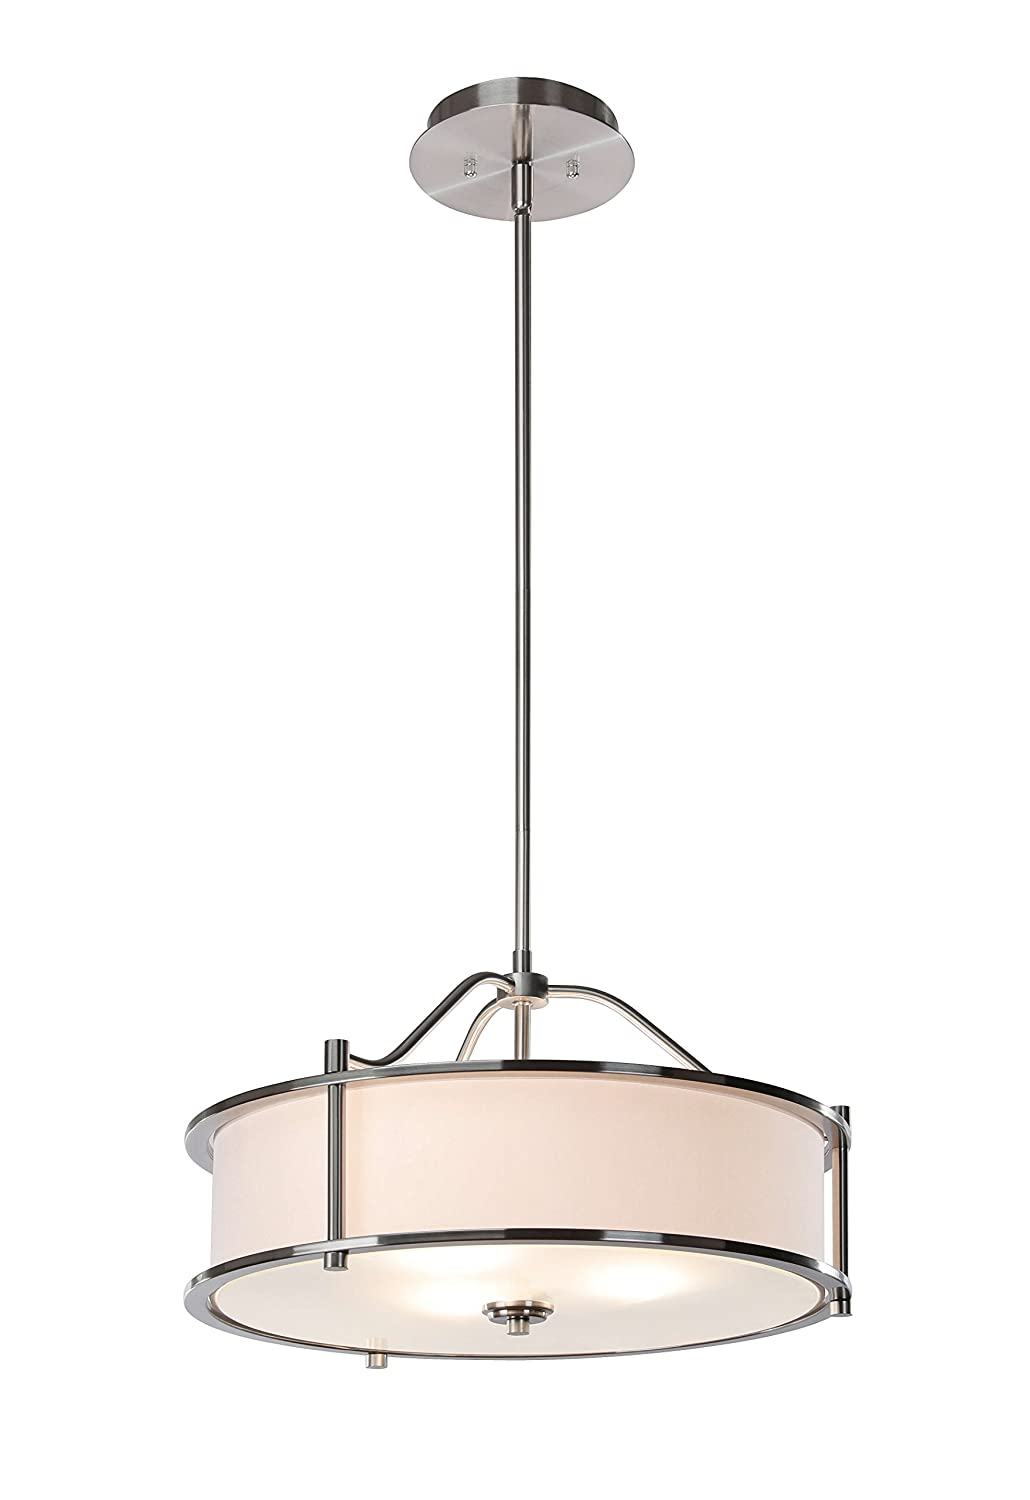 Pendant Lighting 18 inch 3 Light Drum Pendant Light with Fabric Shade and Glass Diffuser in Brushed Nickel, Classic Convertible Drum Chandelier for Living & Dinning Room XiNBEi-Lighting XB-P1199-BN